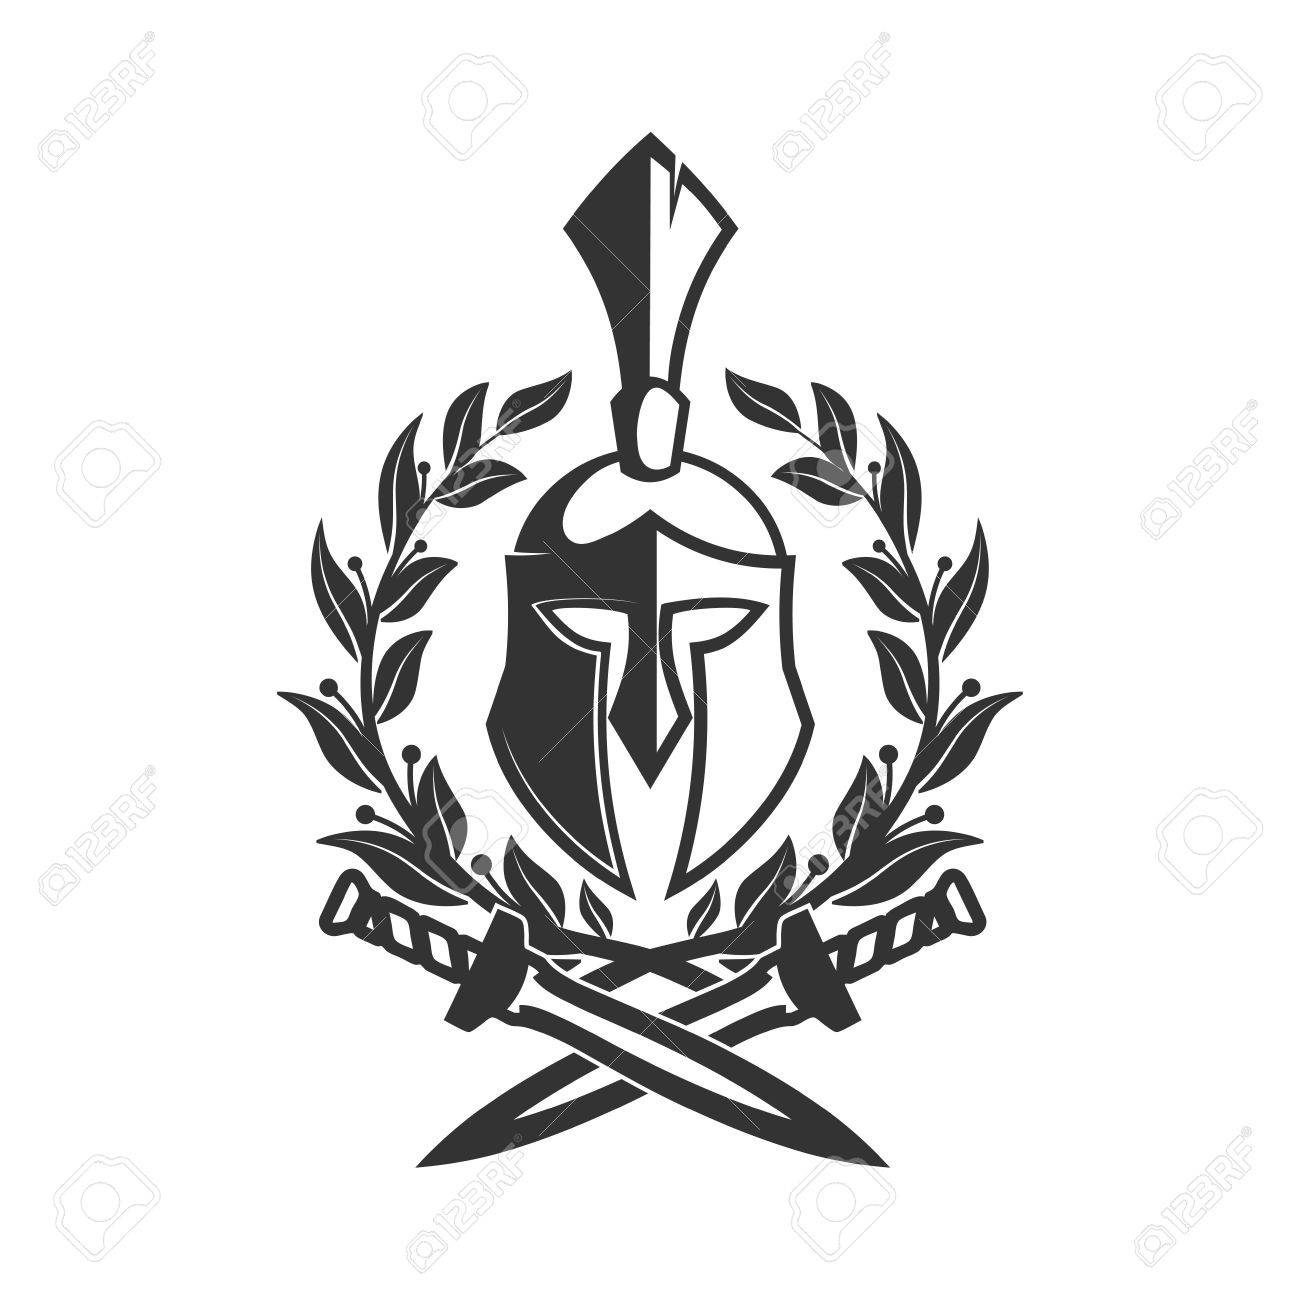 Military Symbol Spartan Helmet In Laurel Wreath Royalty Free